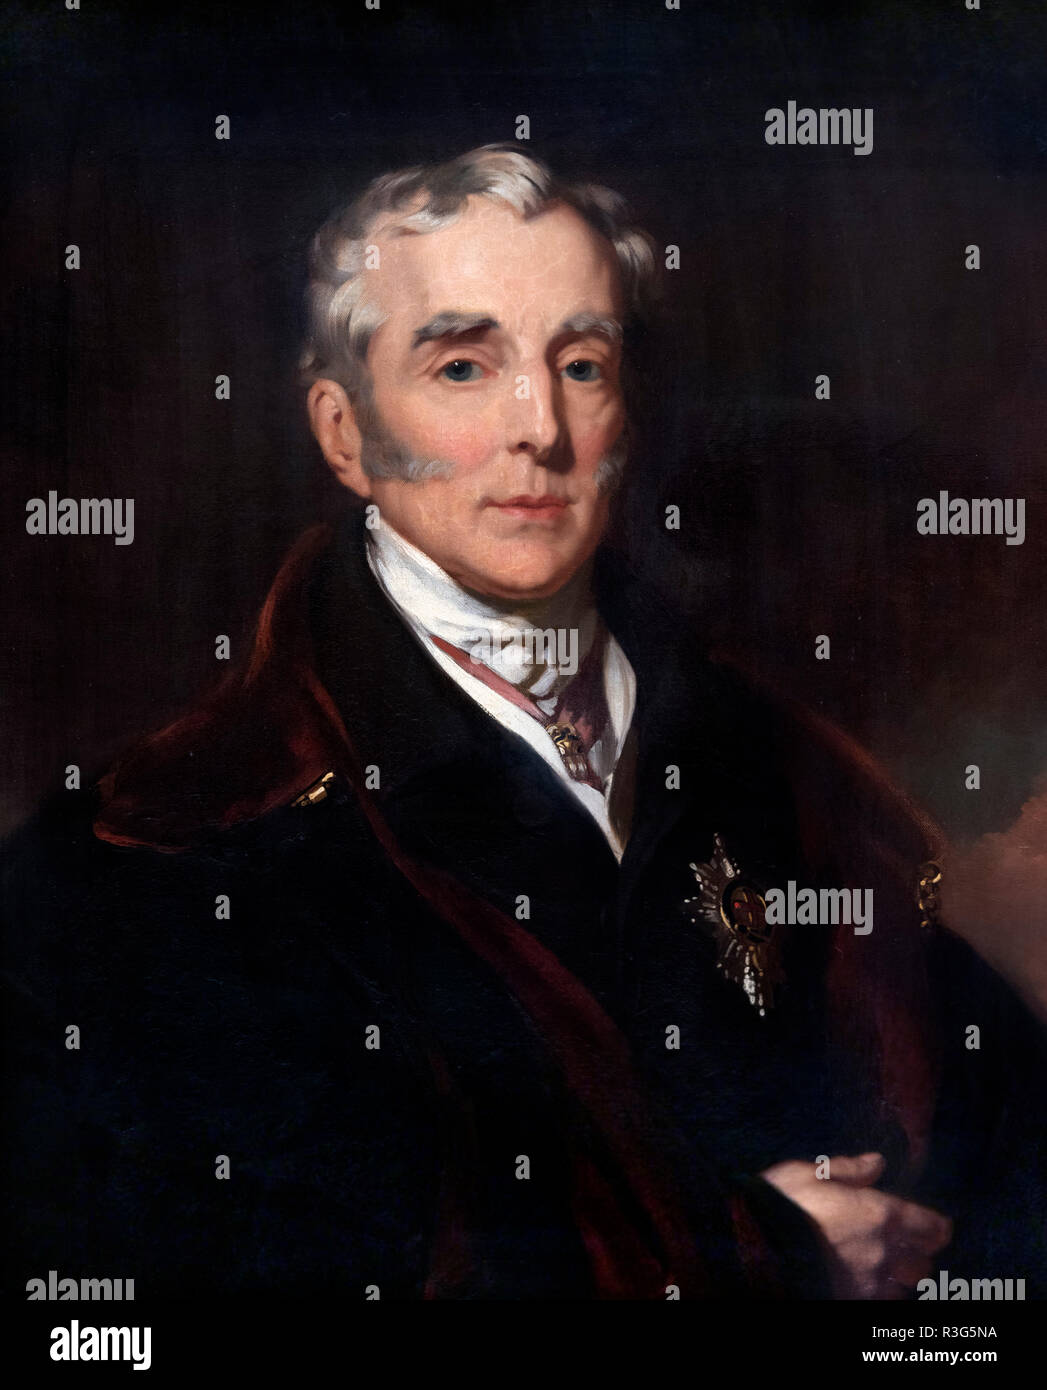 Duke of Wellington, portrait by John Lucas, oil on canvas, 1839. - Stock Image